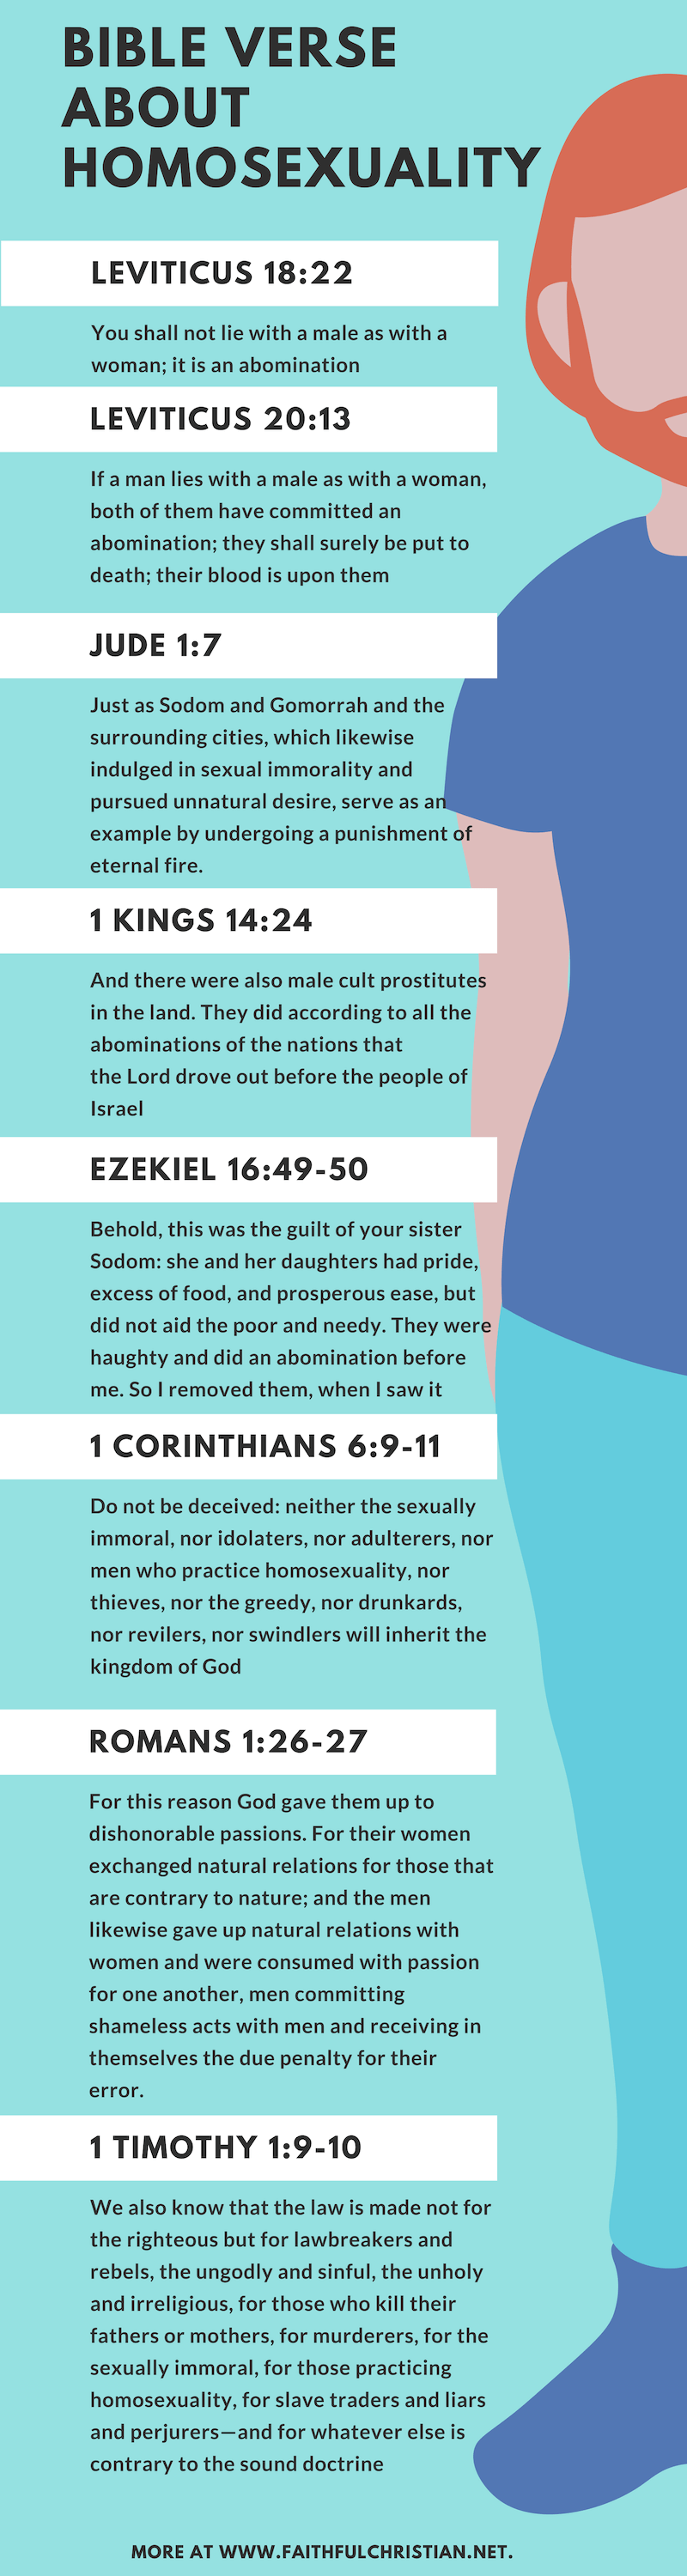 Bible verse about homosexuality